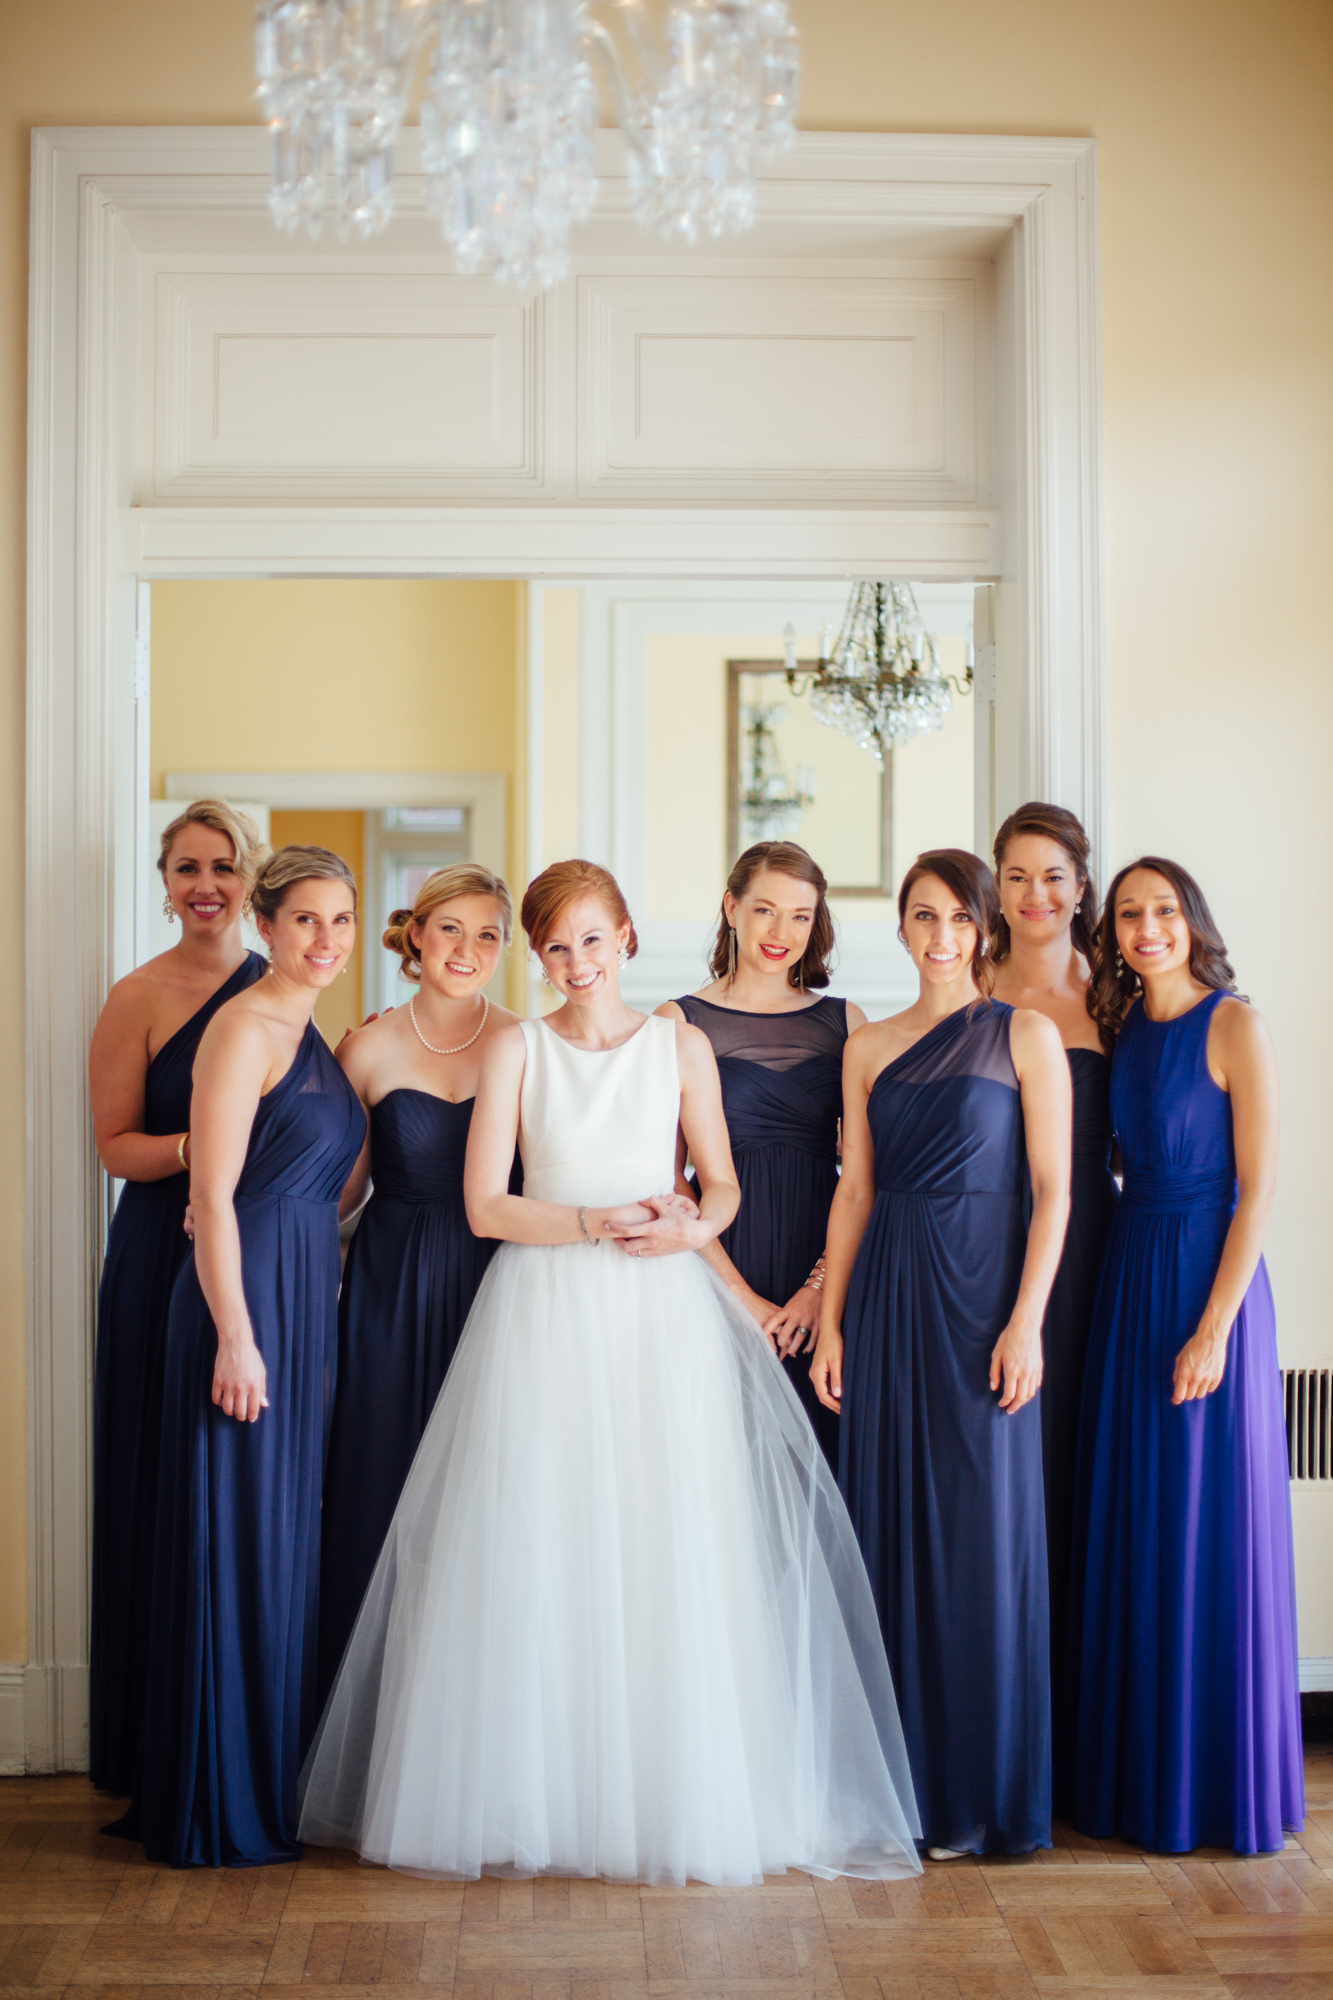 SarahMattozziPhotography-BlackTieWedding-WashingtonDC-9.jpg